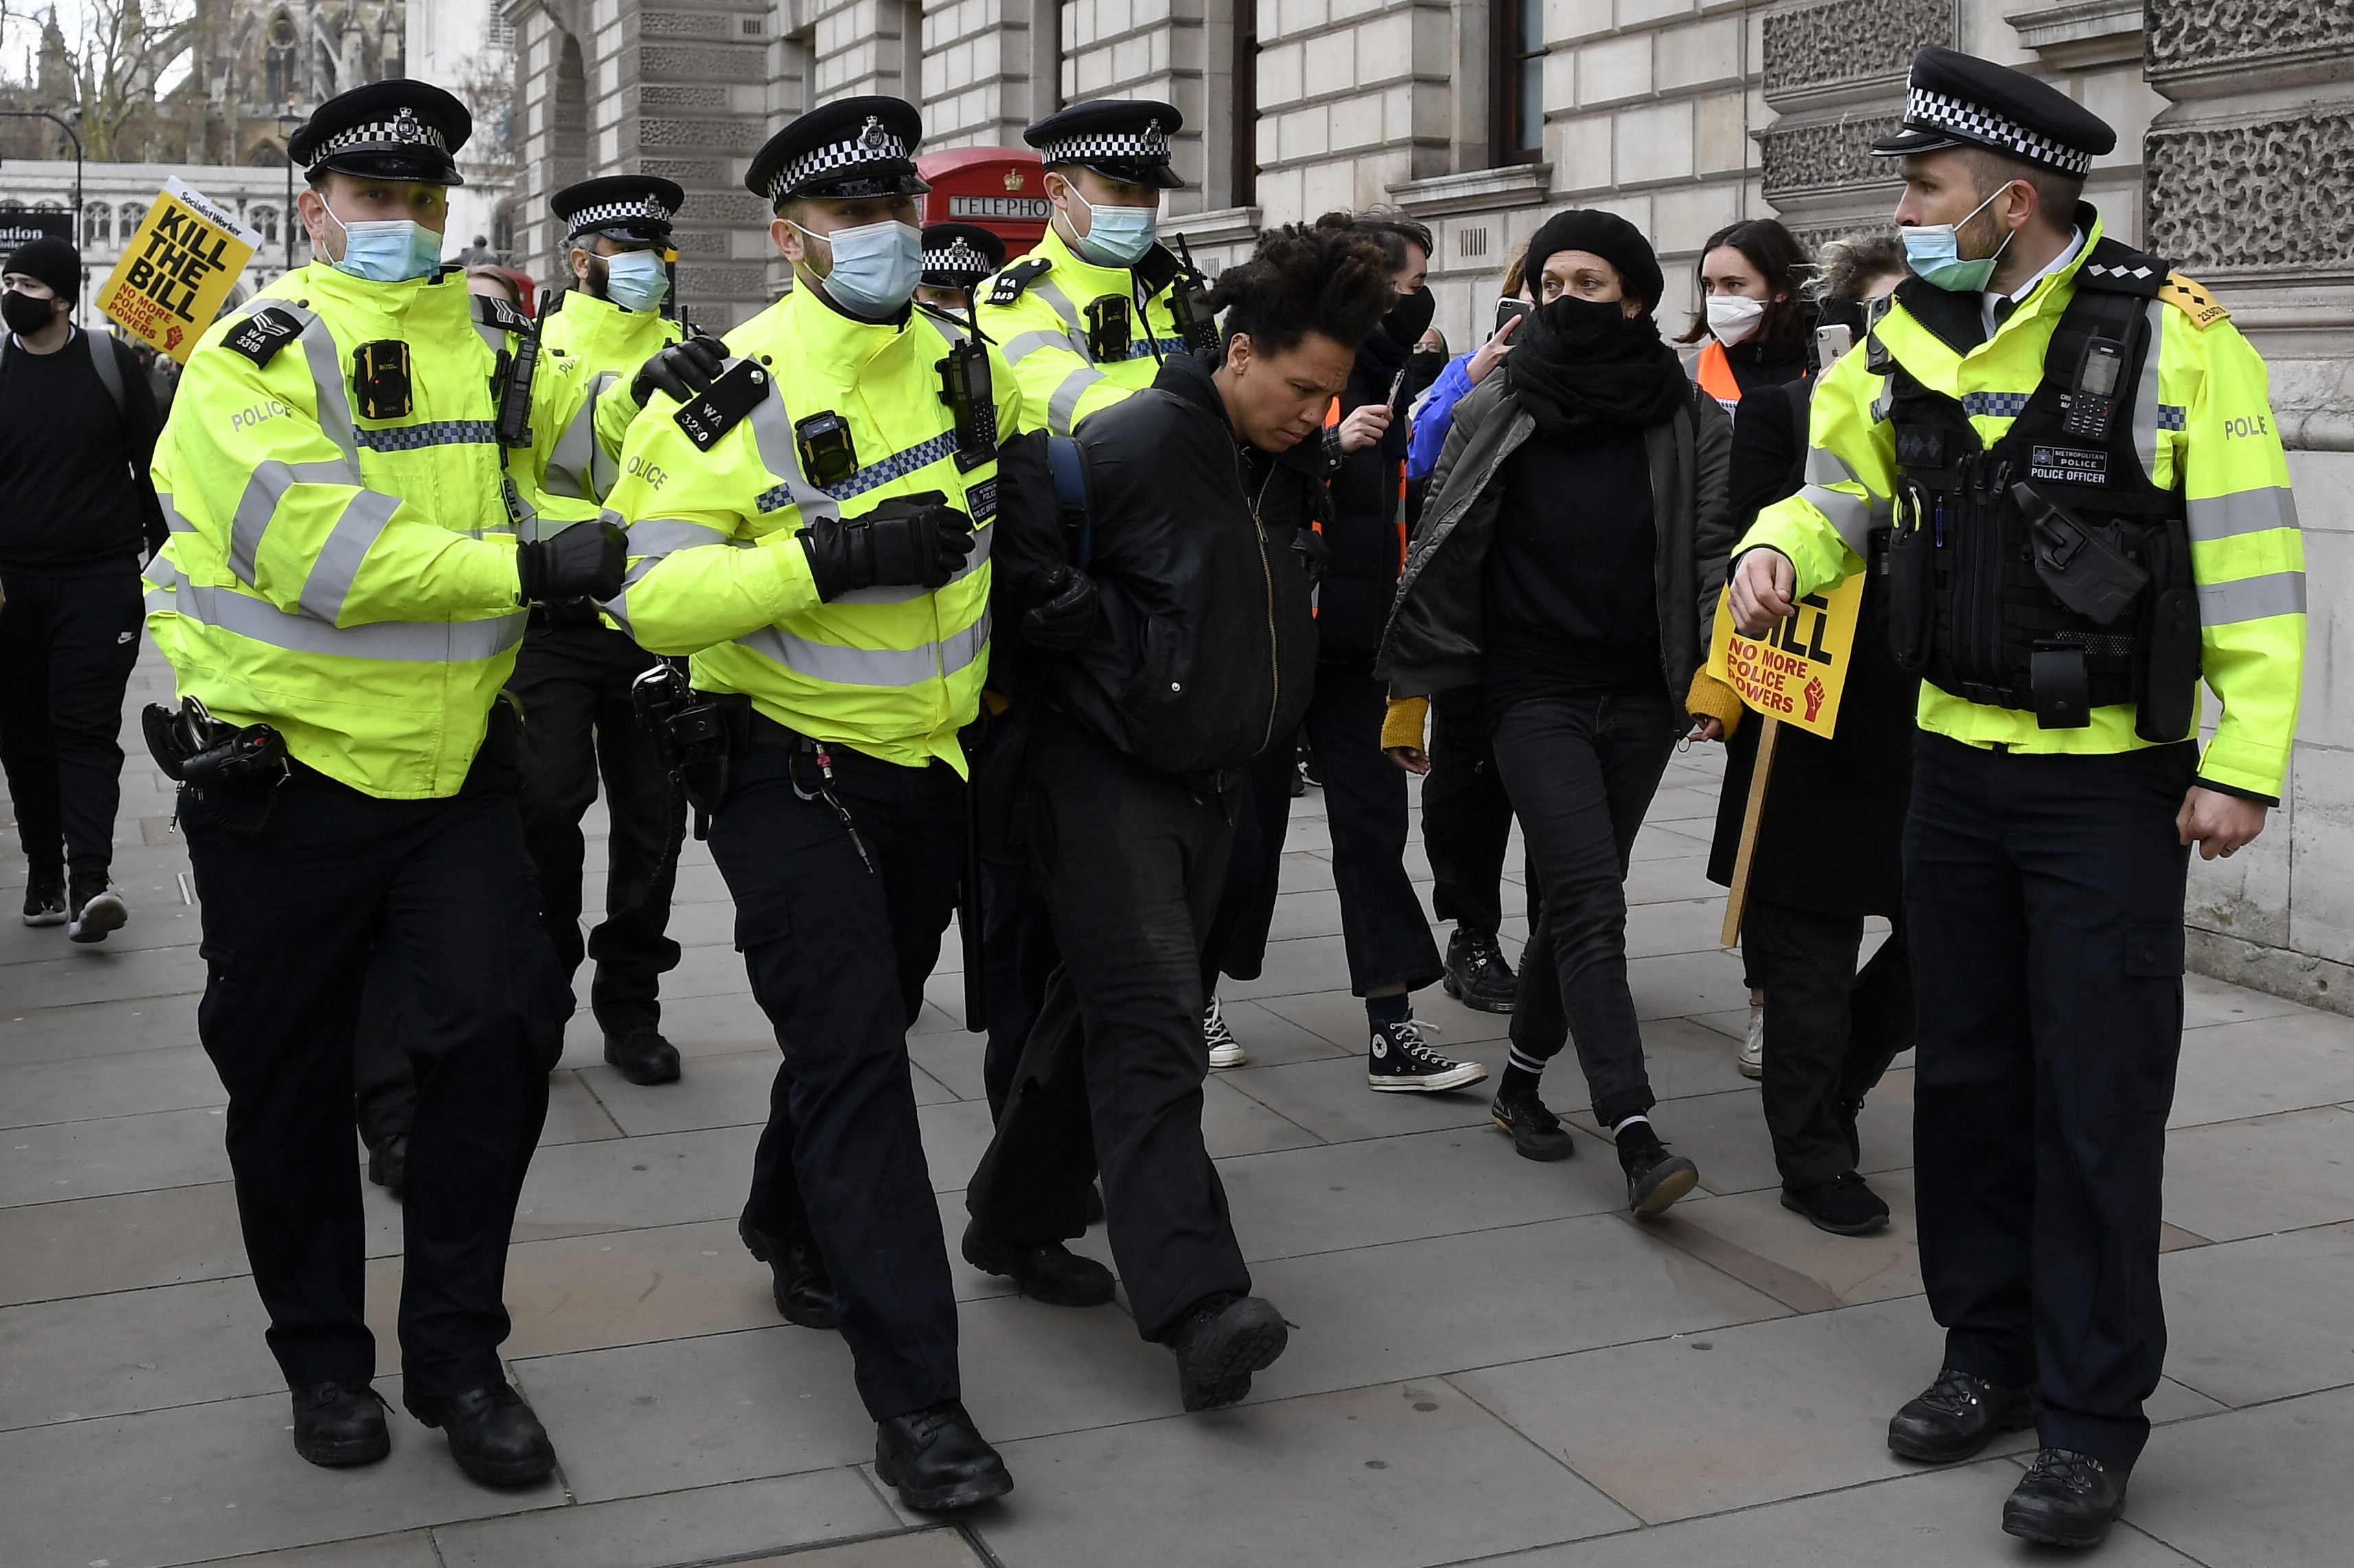 Police detain a man for blocking traffic at Parliament Square during a 'Kill the Bill' protest in London, U.K. on April 3, 2021.